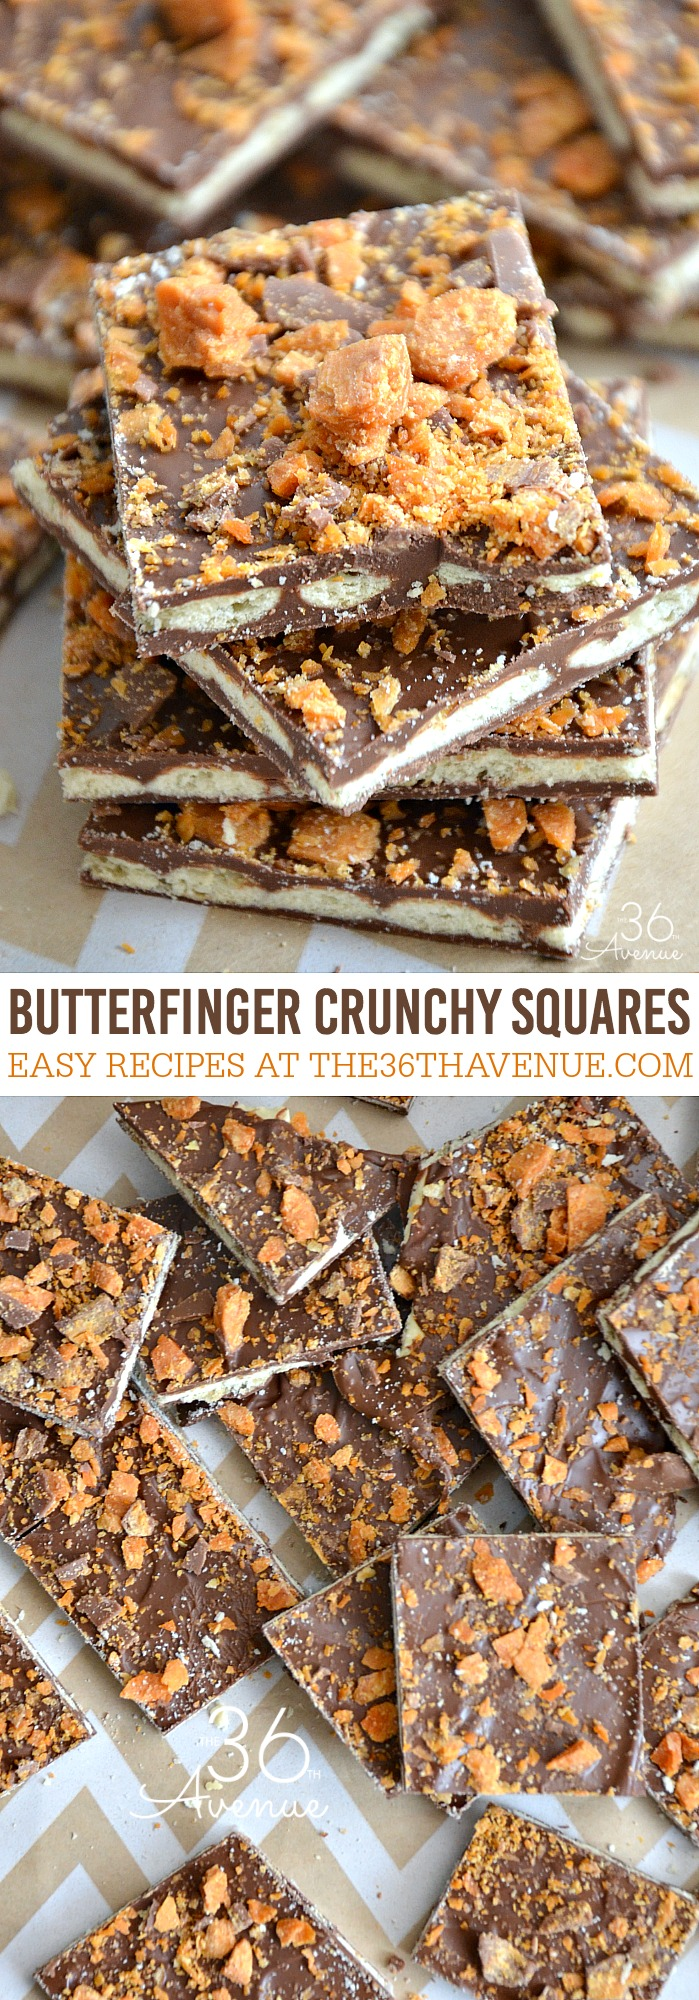 Butterfiger Crunchy Squares the36thavenue.com